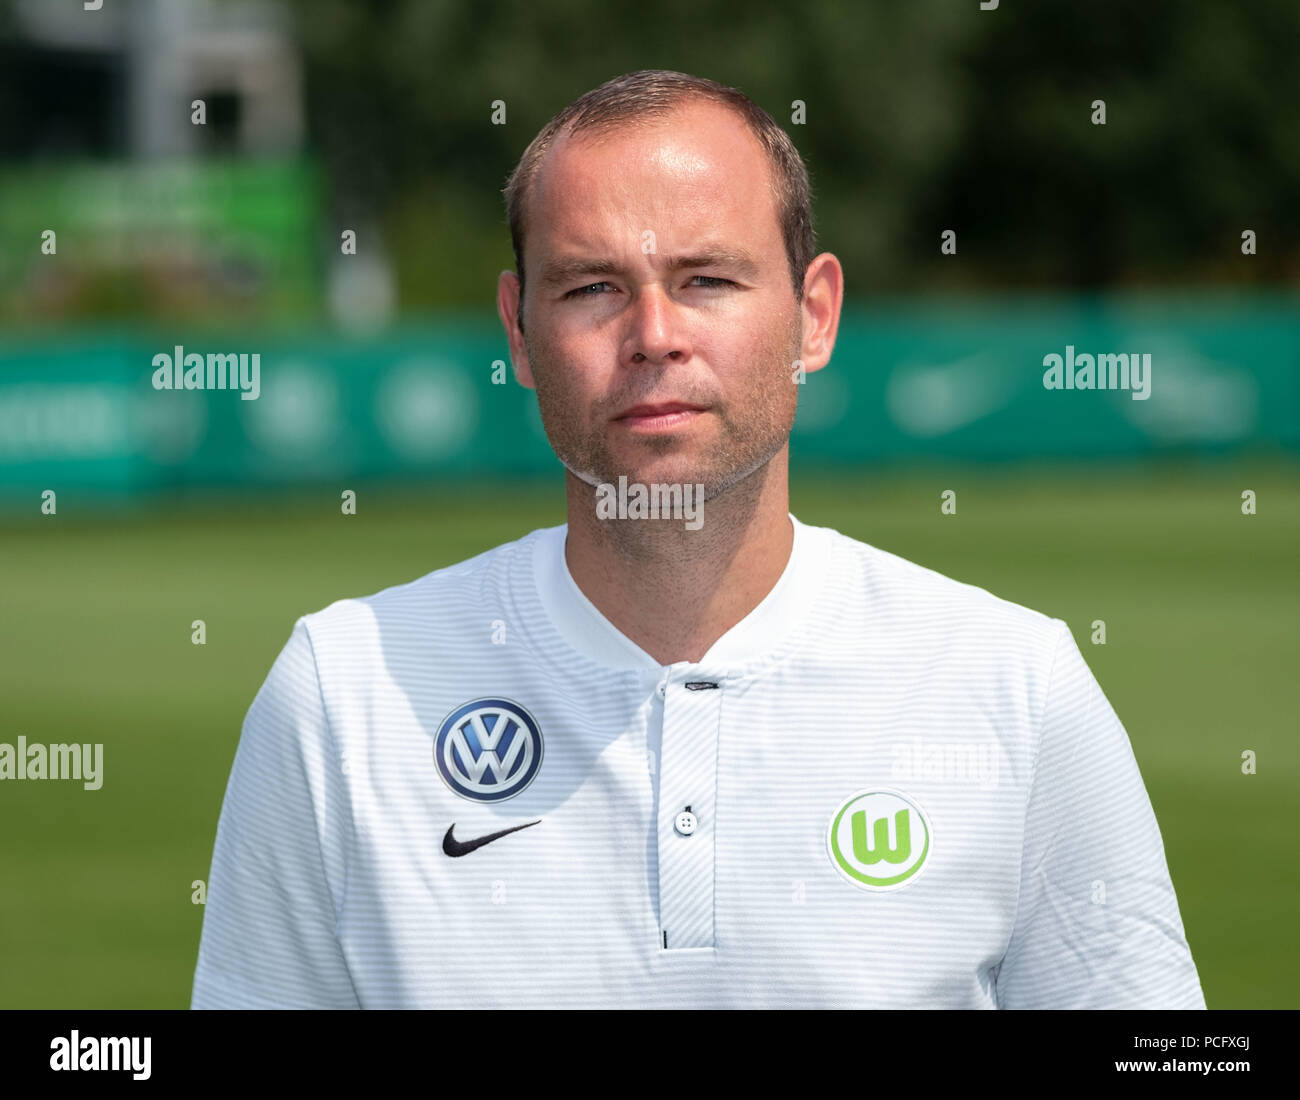 Wolfsburg, Germany. 20th July, 2018. German Bundesliga, official photocall VfL Wolfsburg for season 2018/19 in Wolfsburg, Germany: kitman Nils Scholz ; Credit: Peter Steffen/dpa | usage worldwide/dpa/Alamy Live News - Stock Image